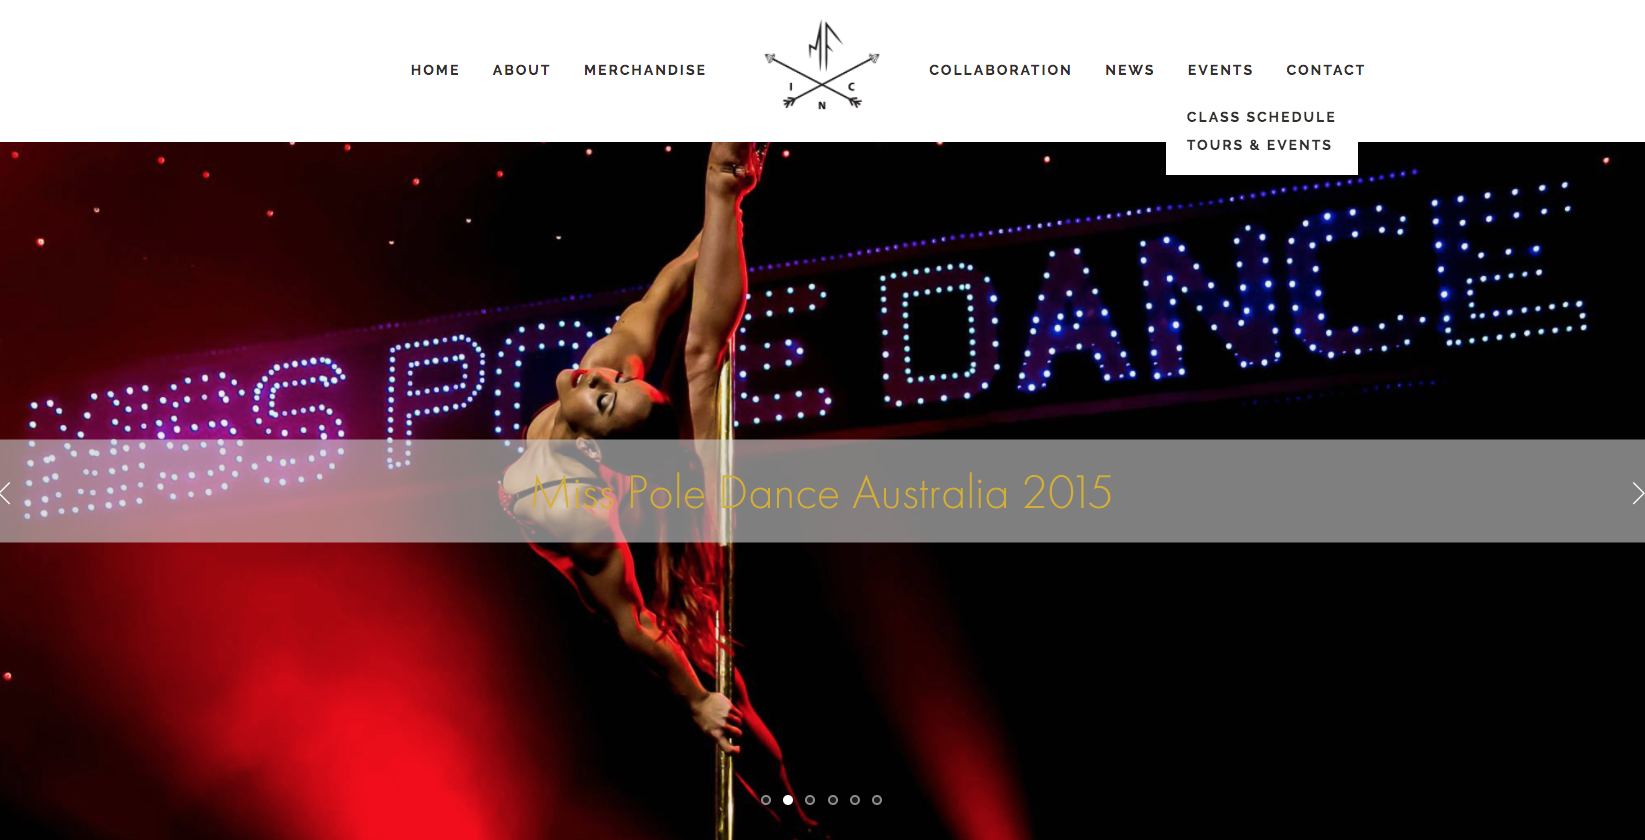 Miss Filly Pole Dancer website by Social Star